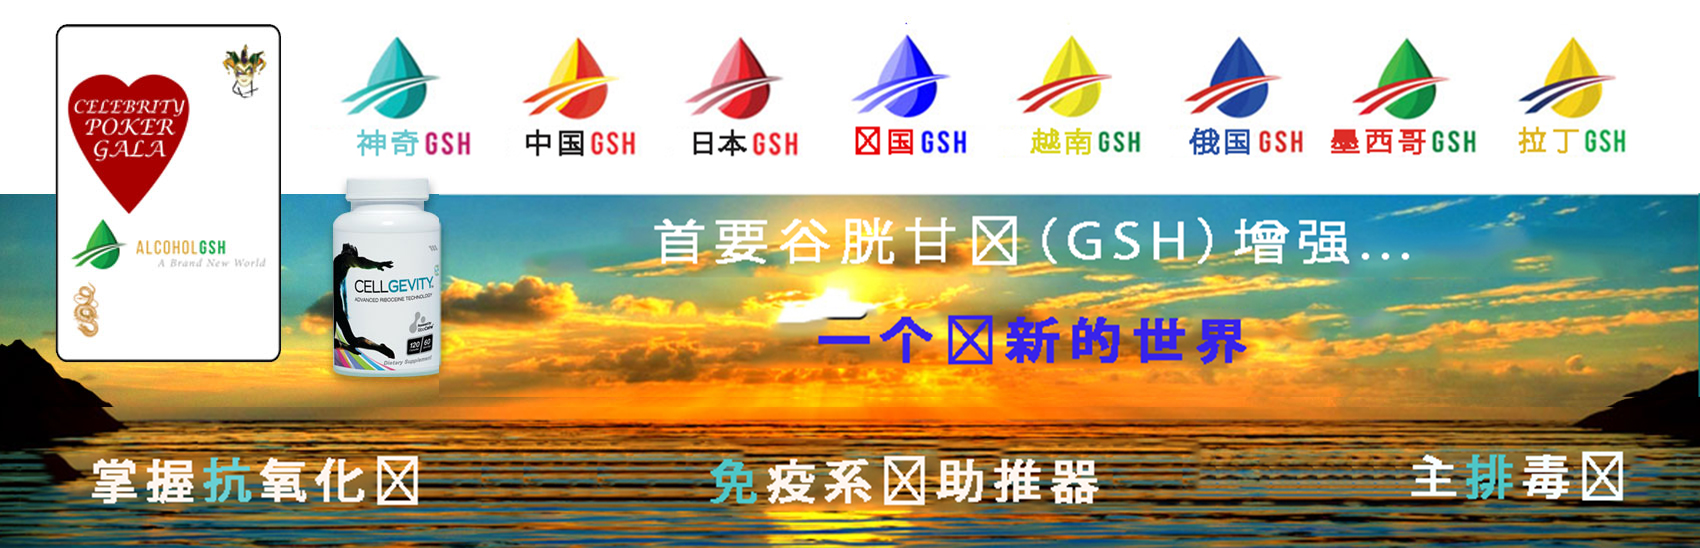 Premier Gluthione GSH Enhancement